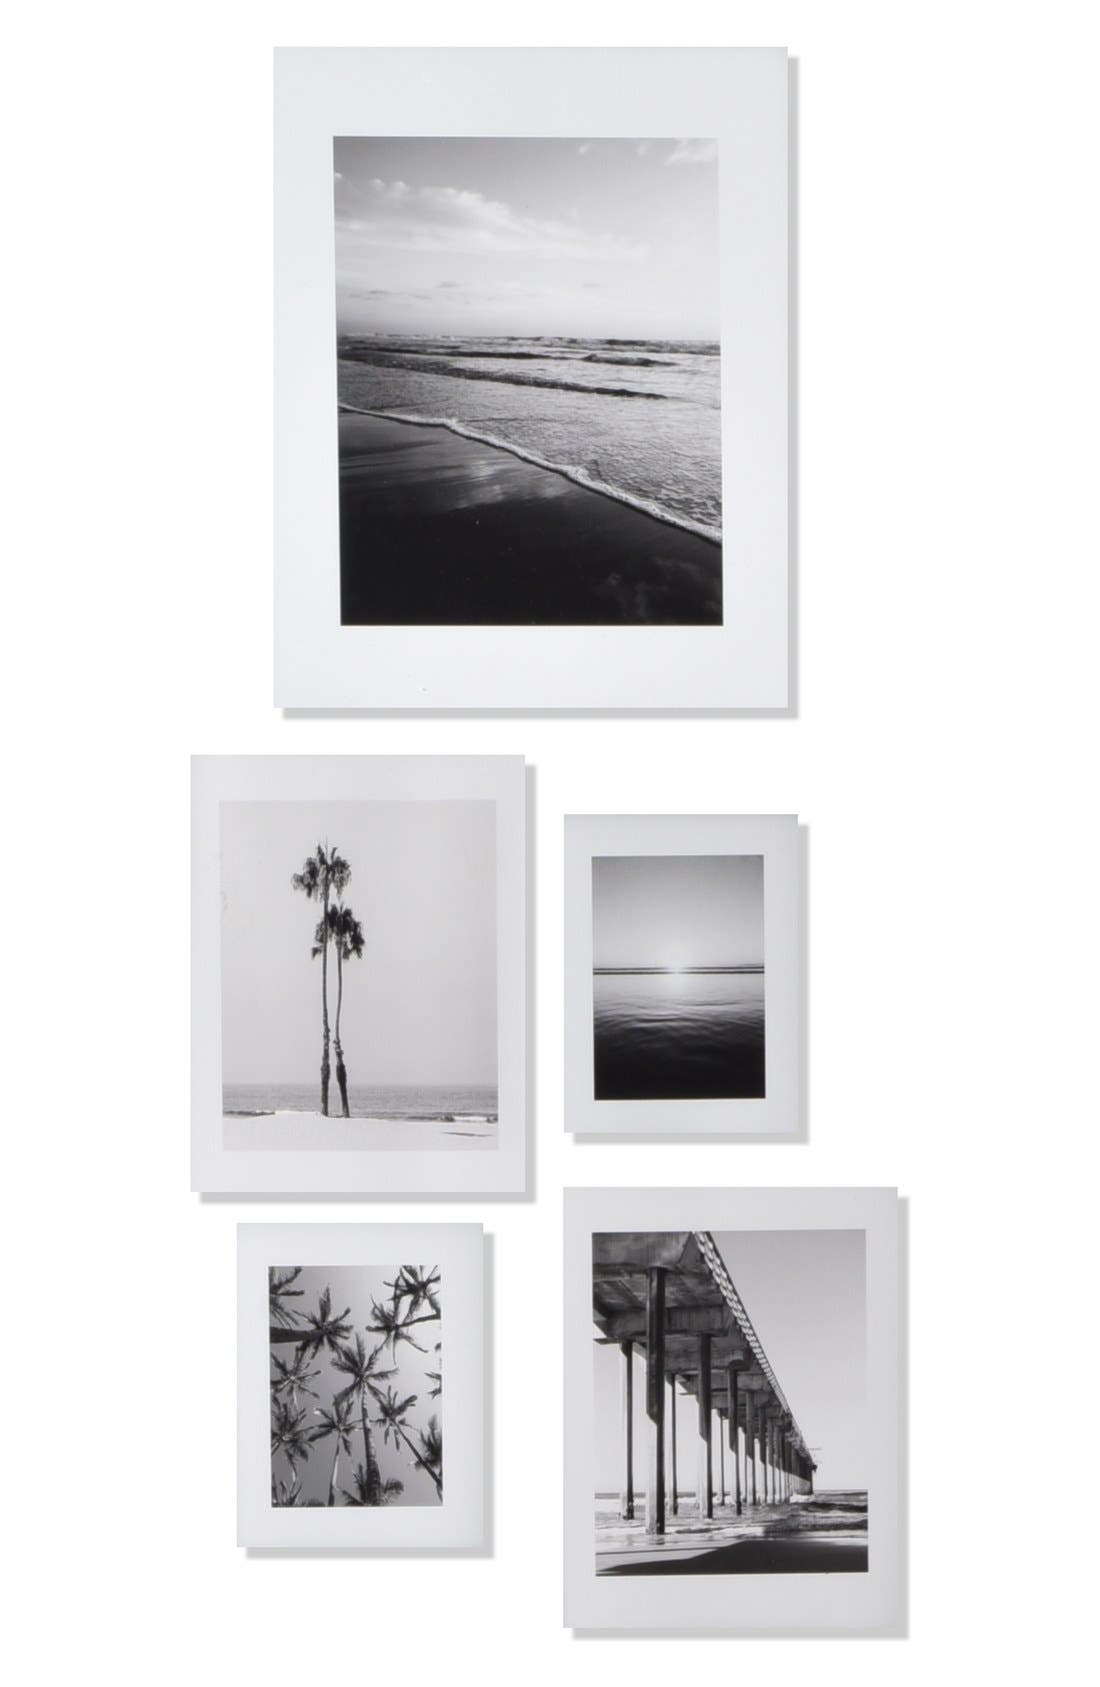 Alternate Image 1 Selected - DENY Designs 'Ombré Beach' Wall Art Print Set (Set of 5)